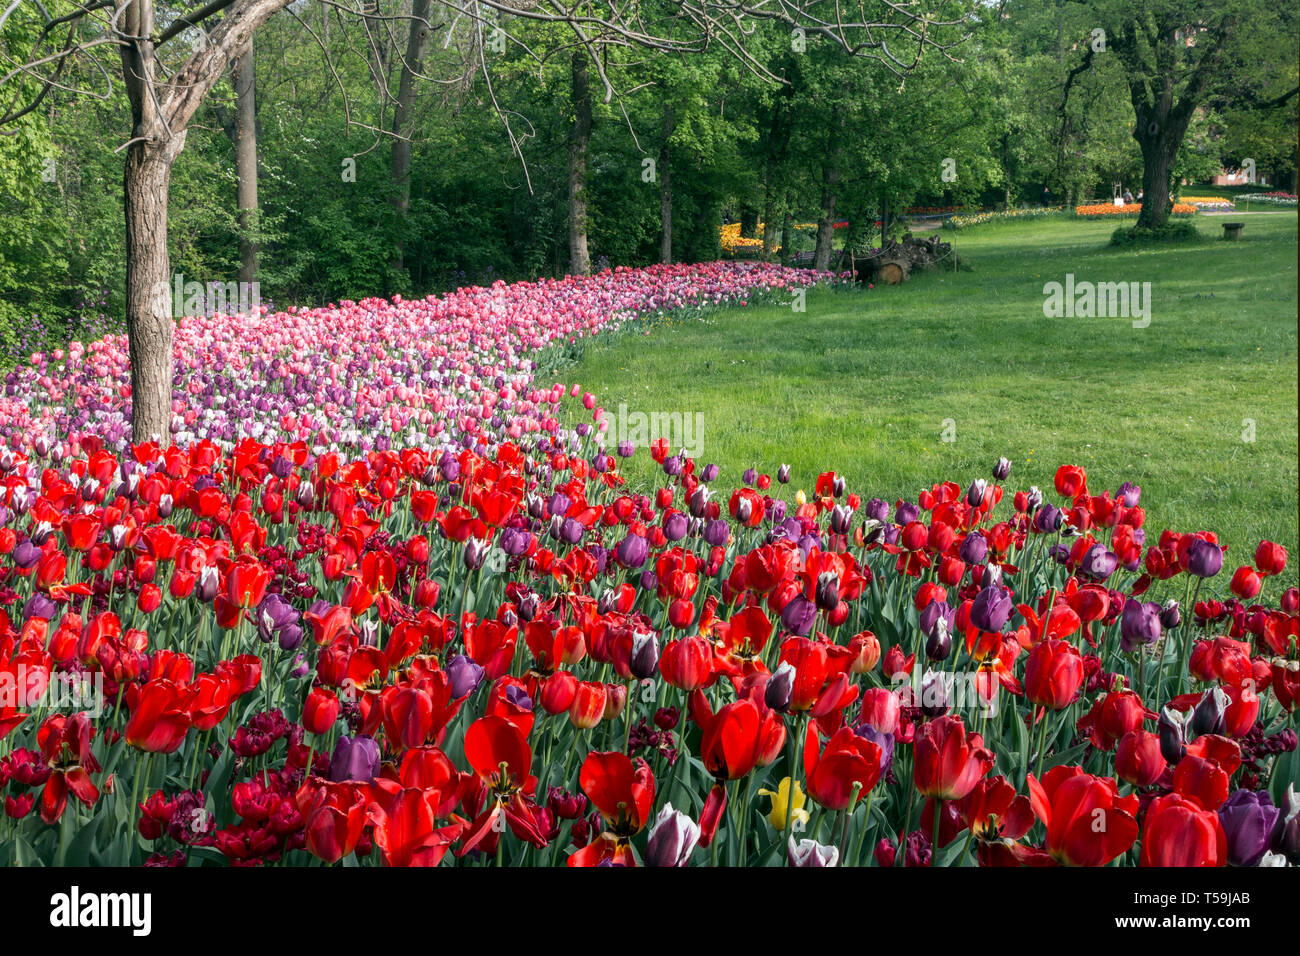 A stunning display of multiple colors tulip flowers in the Castle of Pralormo nearby Turin, Italy, where every year in April the Exhibition of Messer  - Stock Image